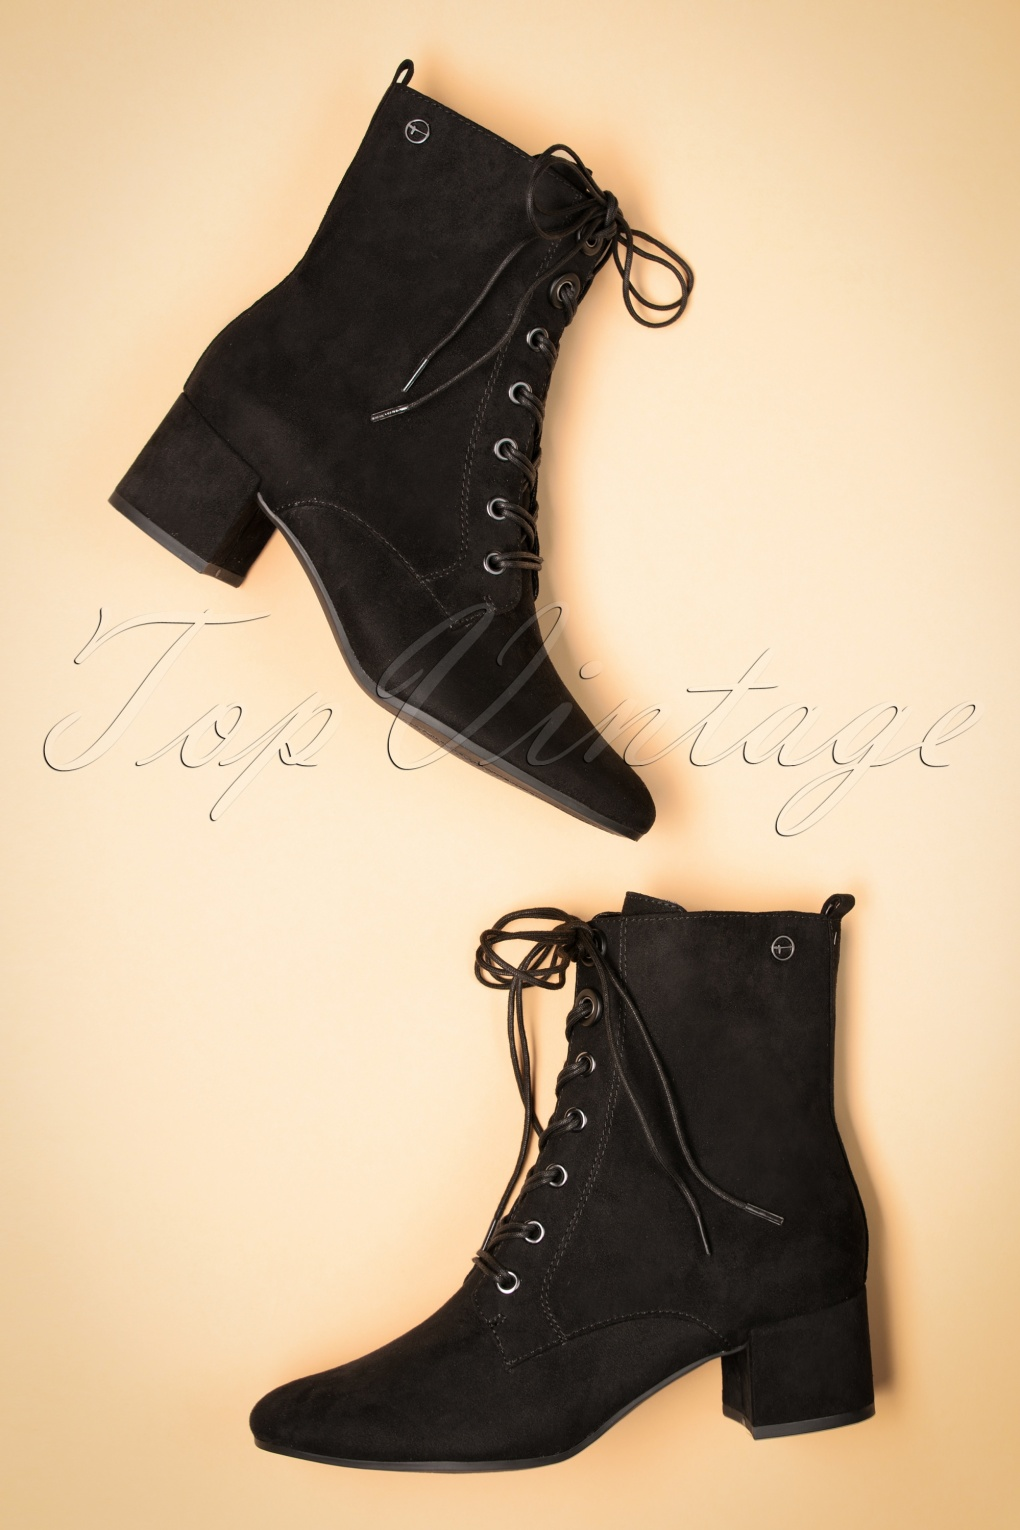 Vintage Boots, Retro Boots 70s Livia Lace Up Ankle Booties in Black £63.39 AT vintagedancer.com